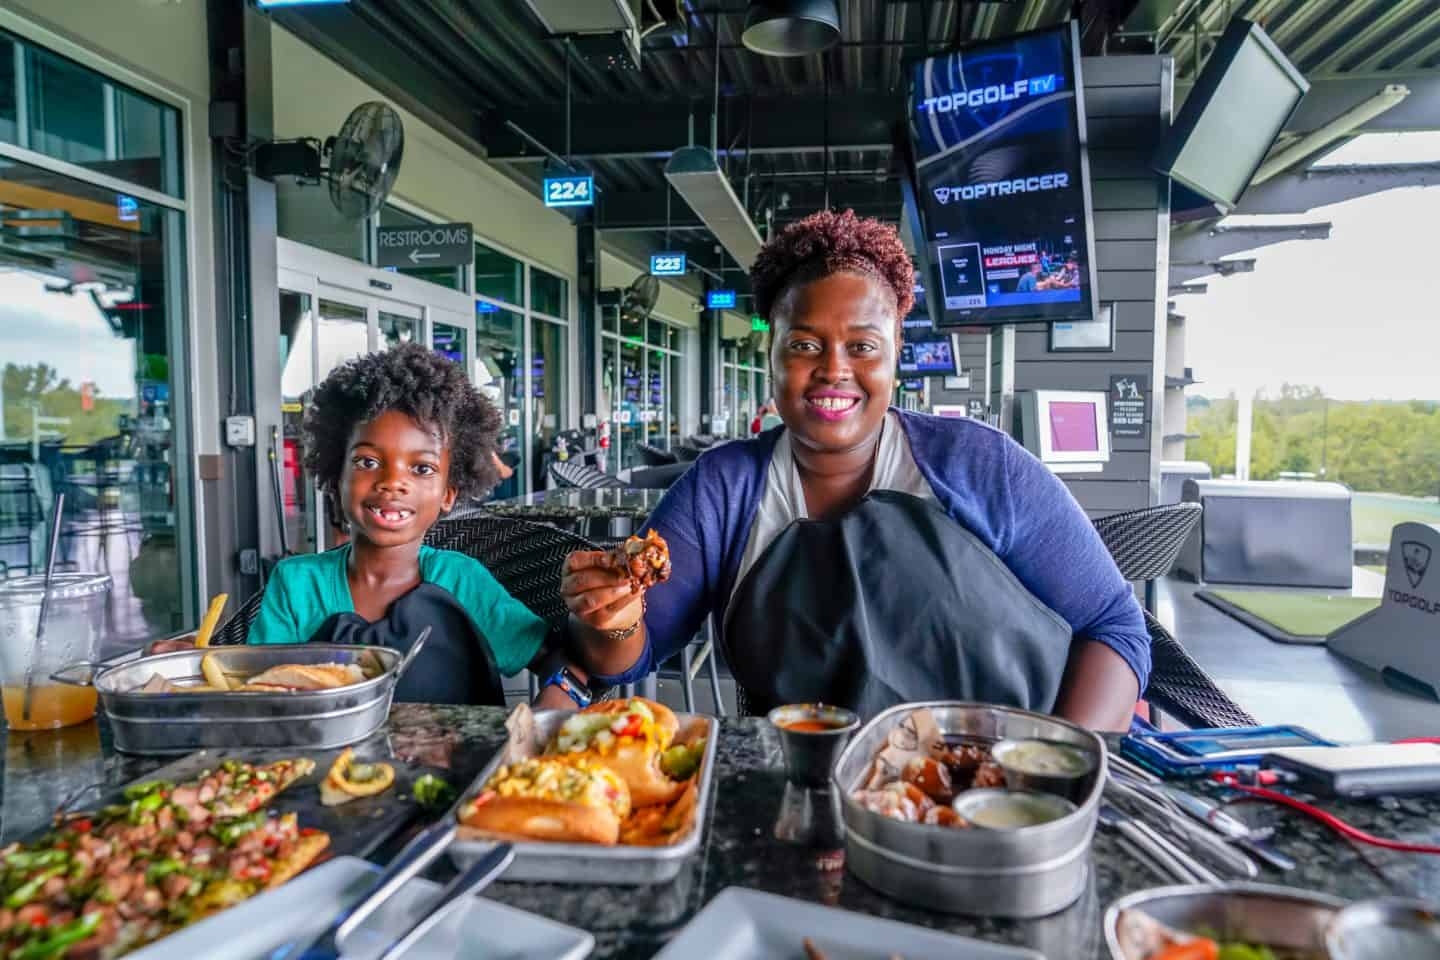 enjoying food at topgolf Overland Park